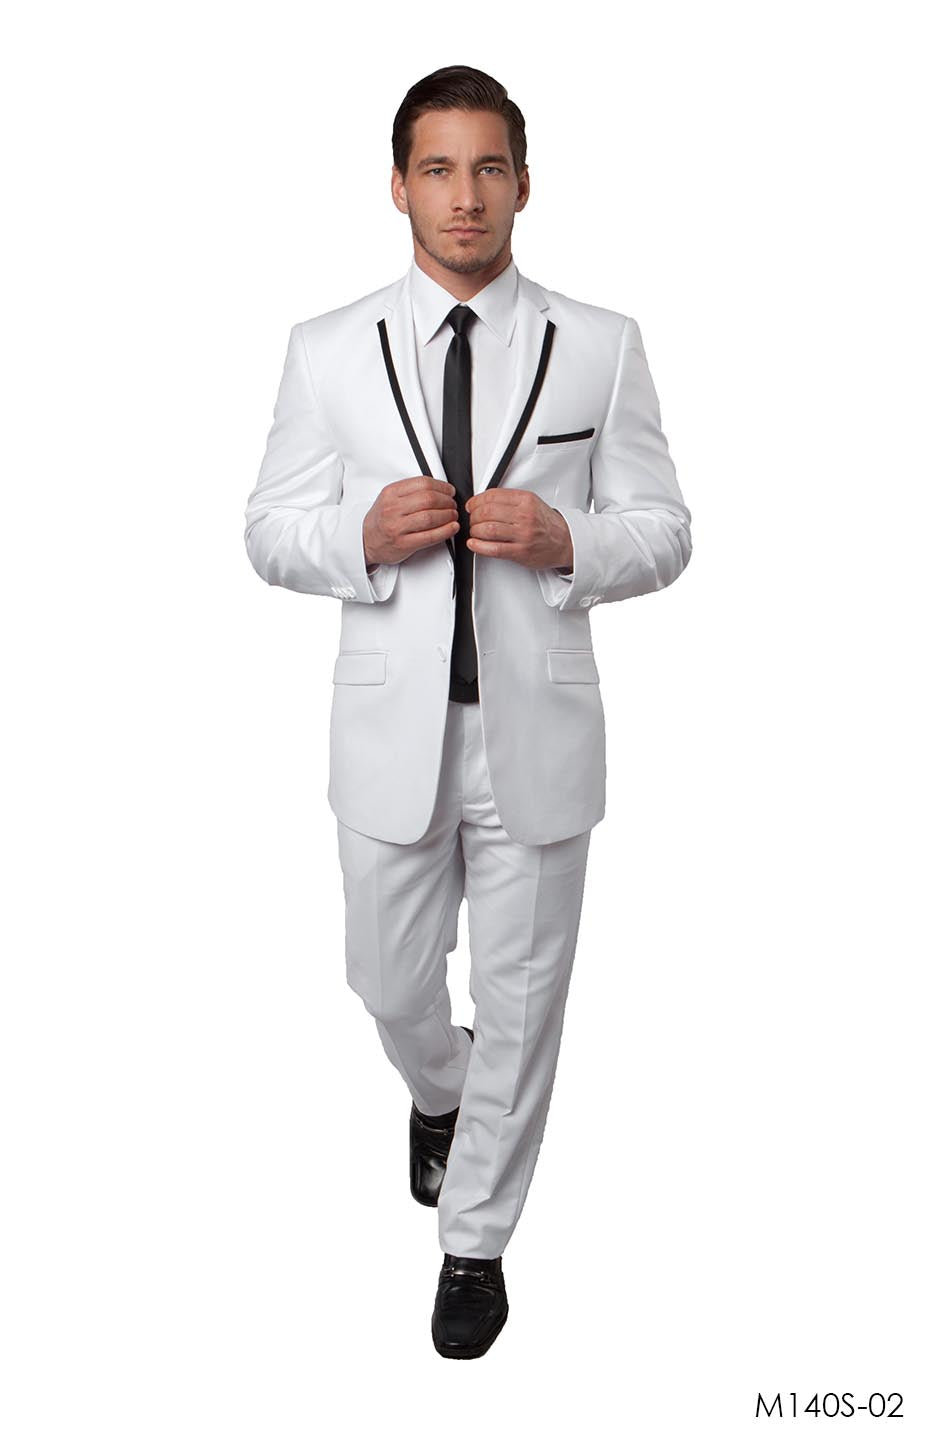 White / Black Suit For Men Formal Suits For All Ocassions M140S-02